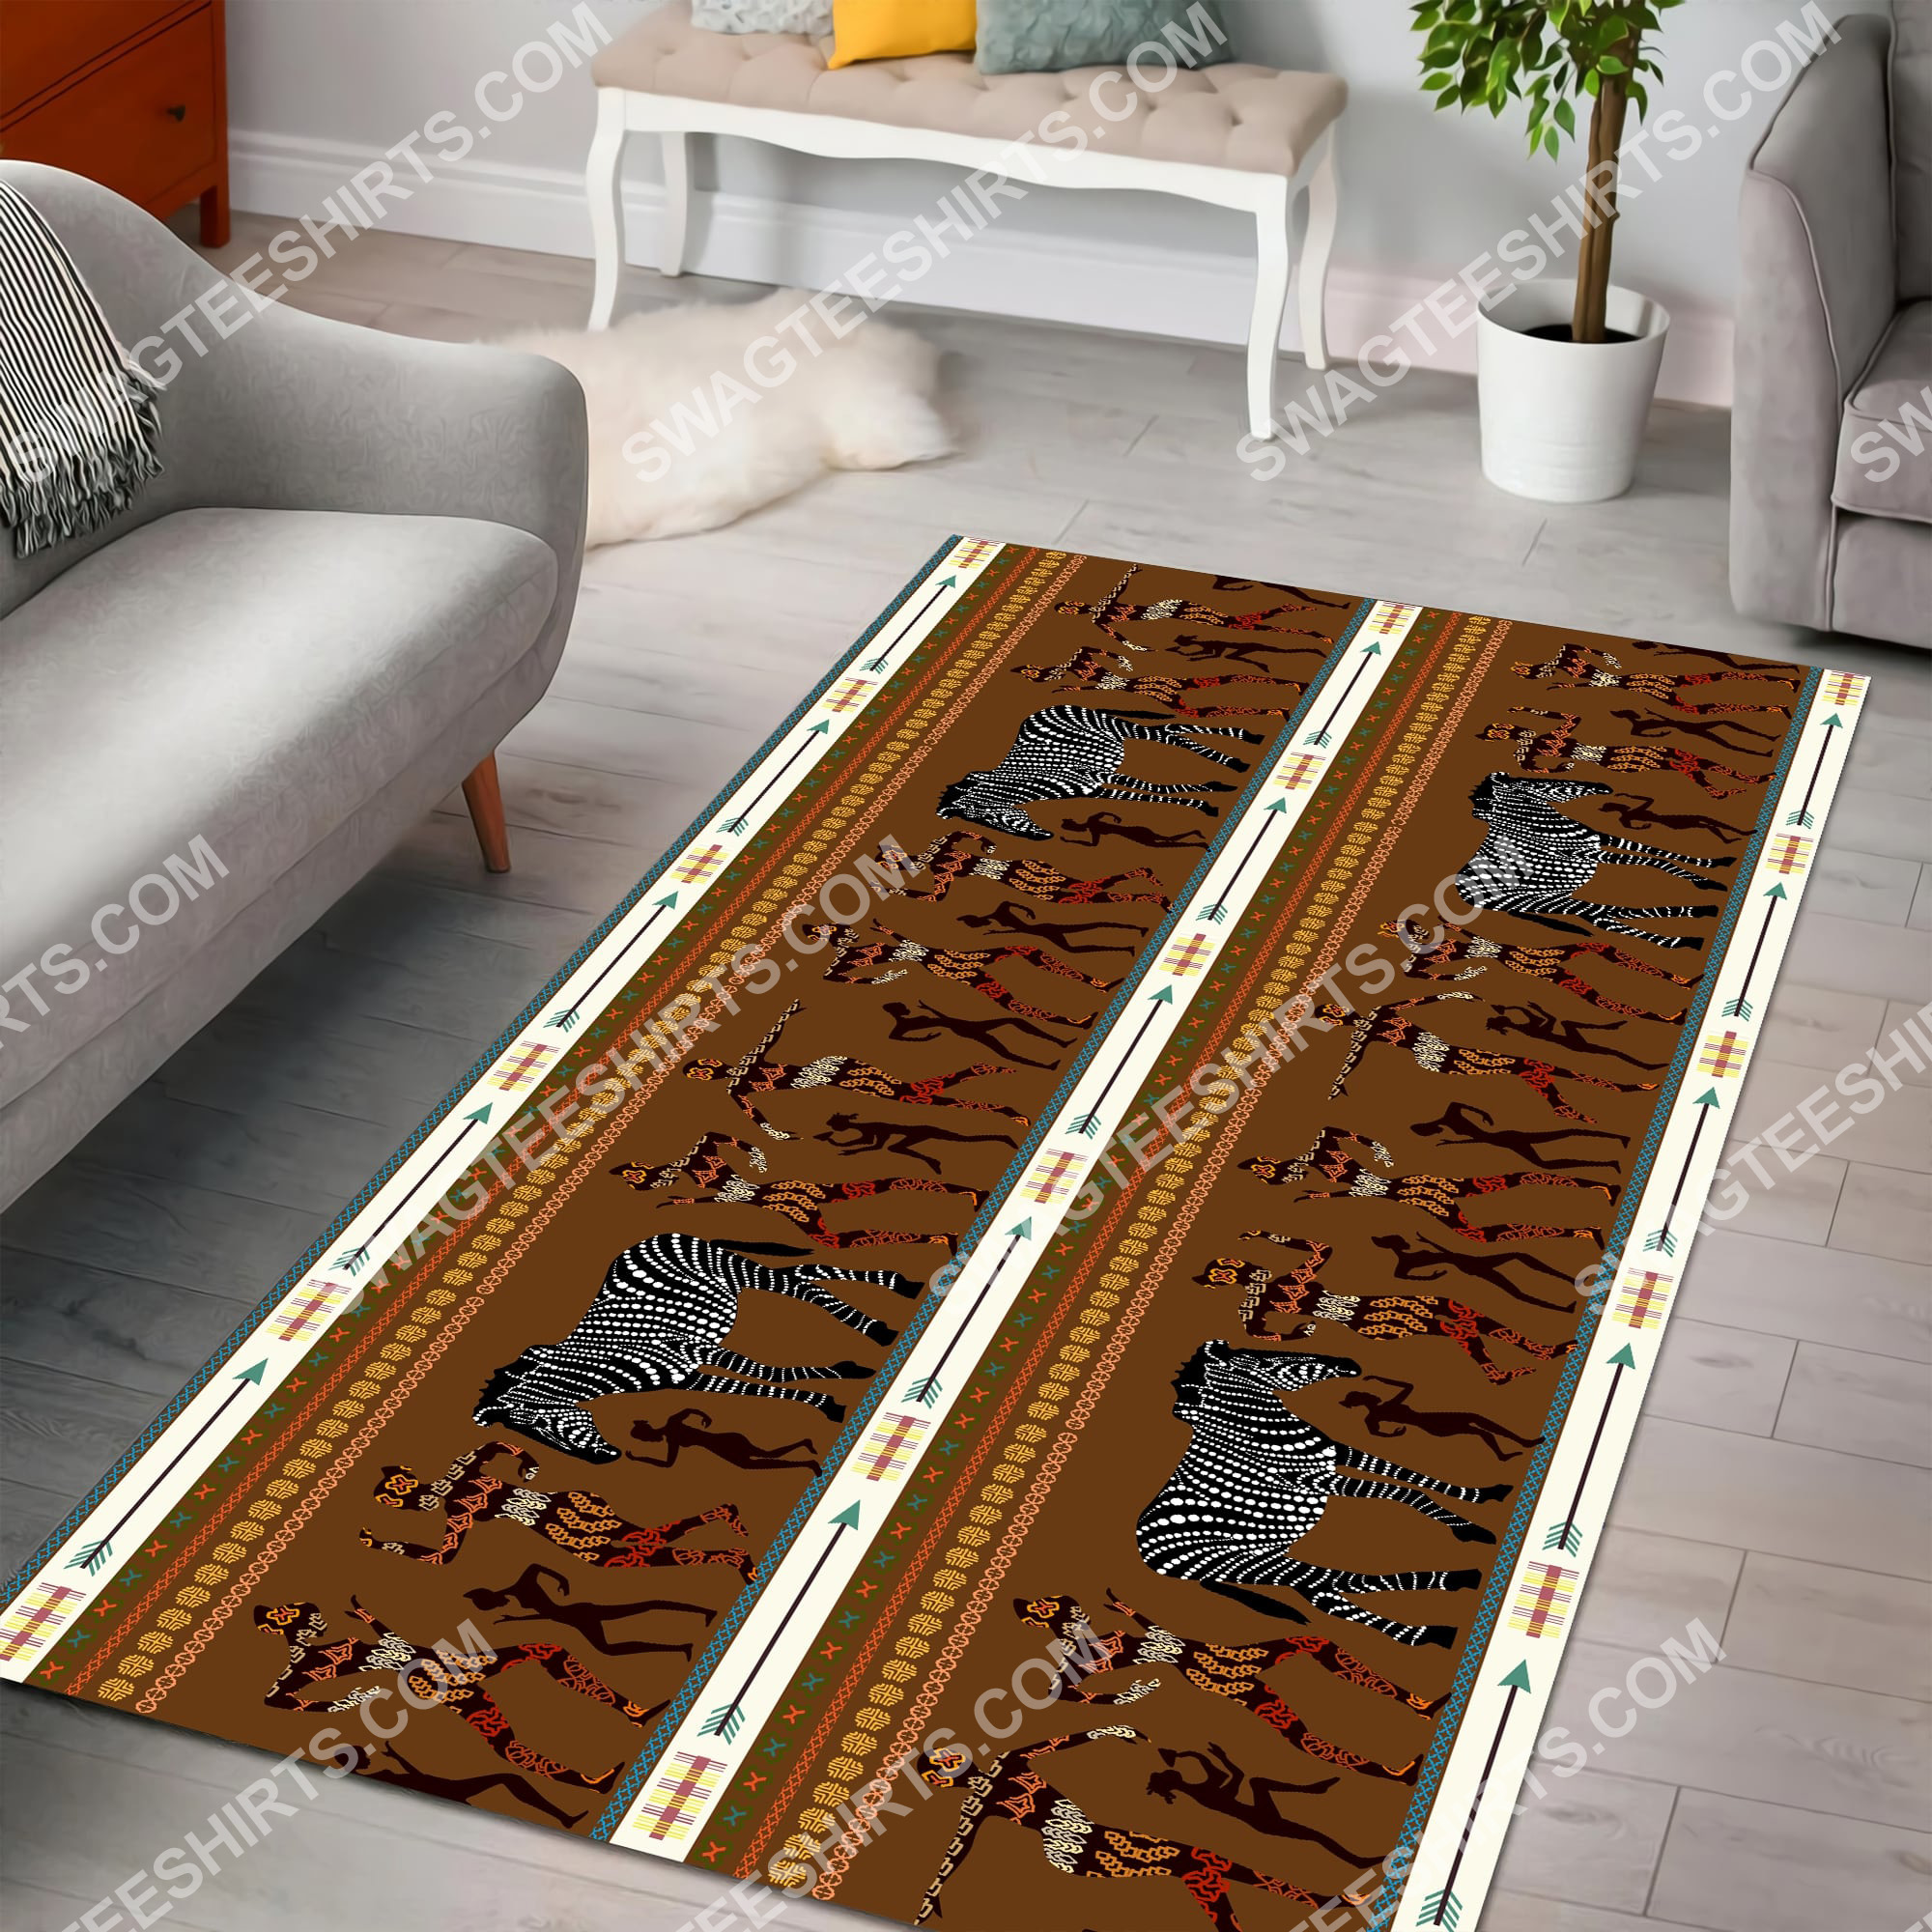 zebra dancing australian culture art all over printed rug 4(1)